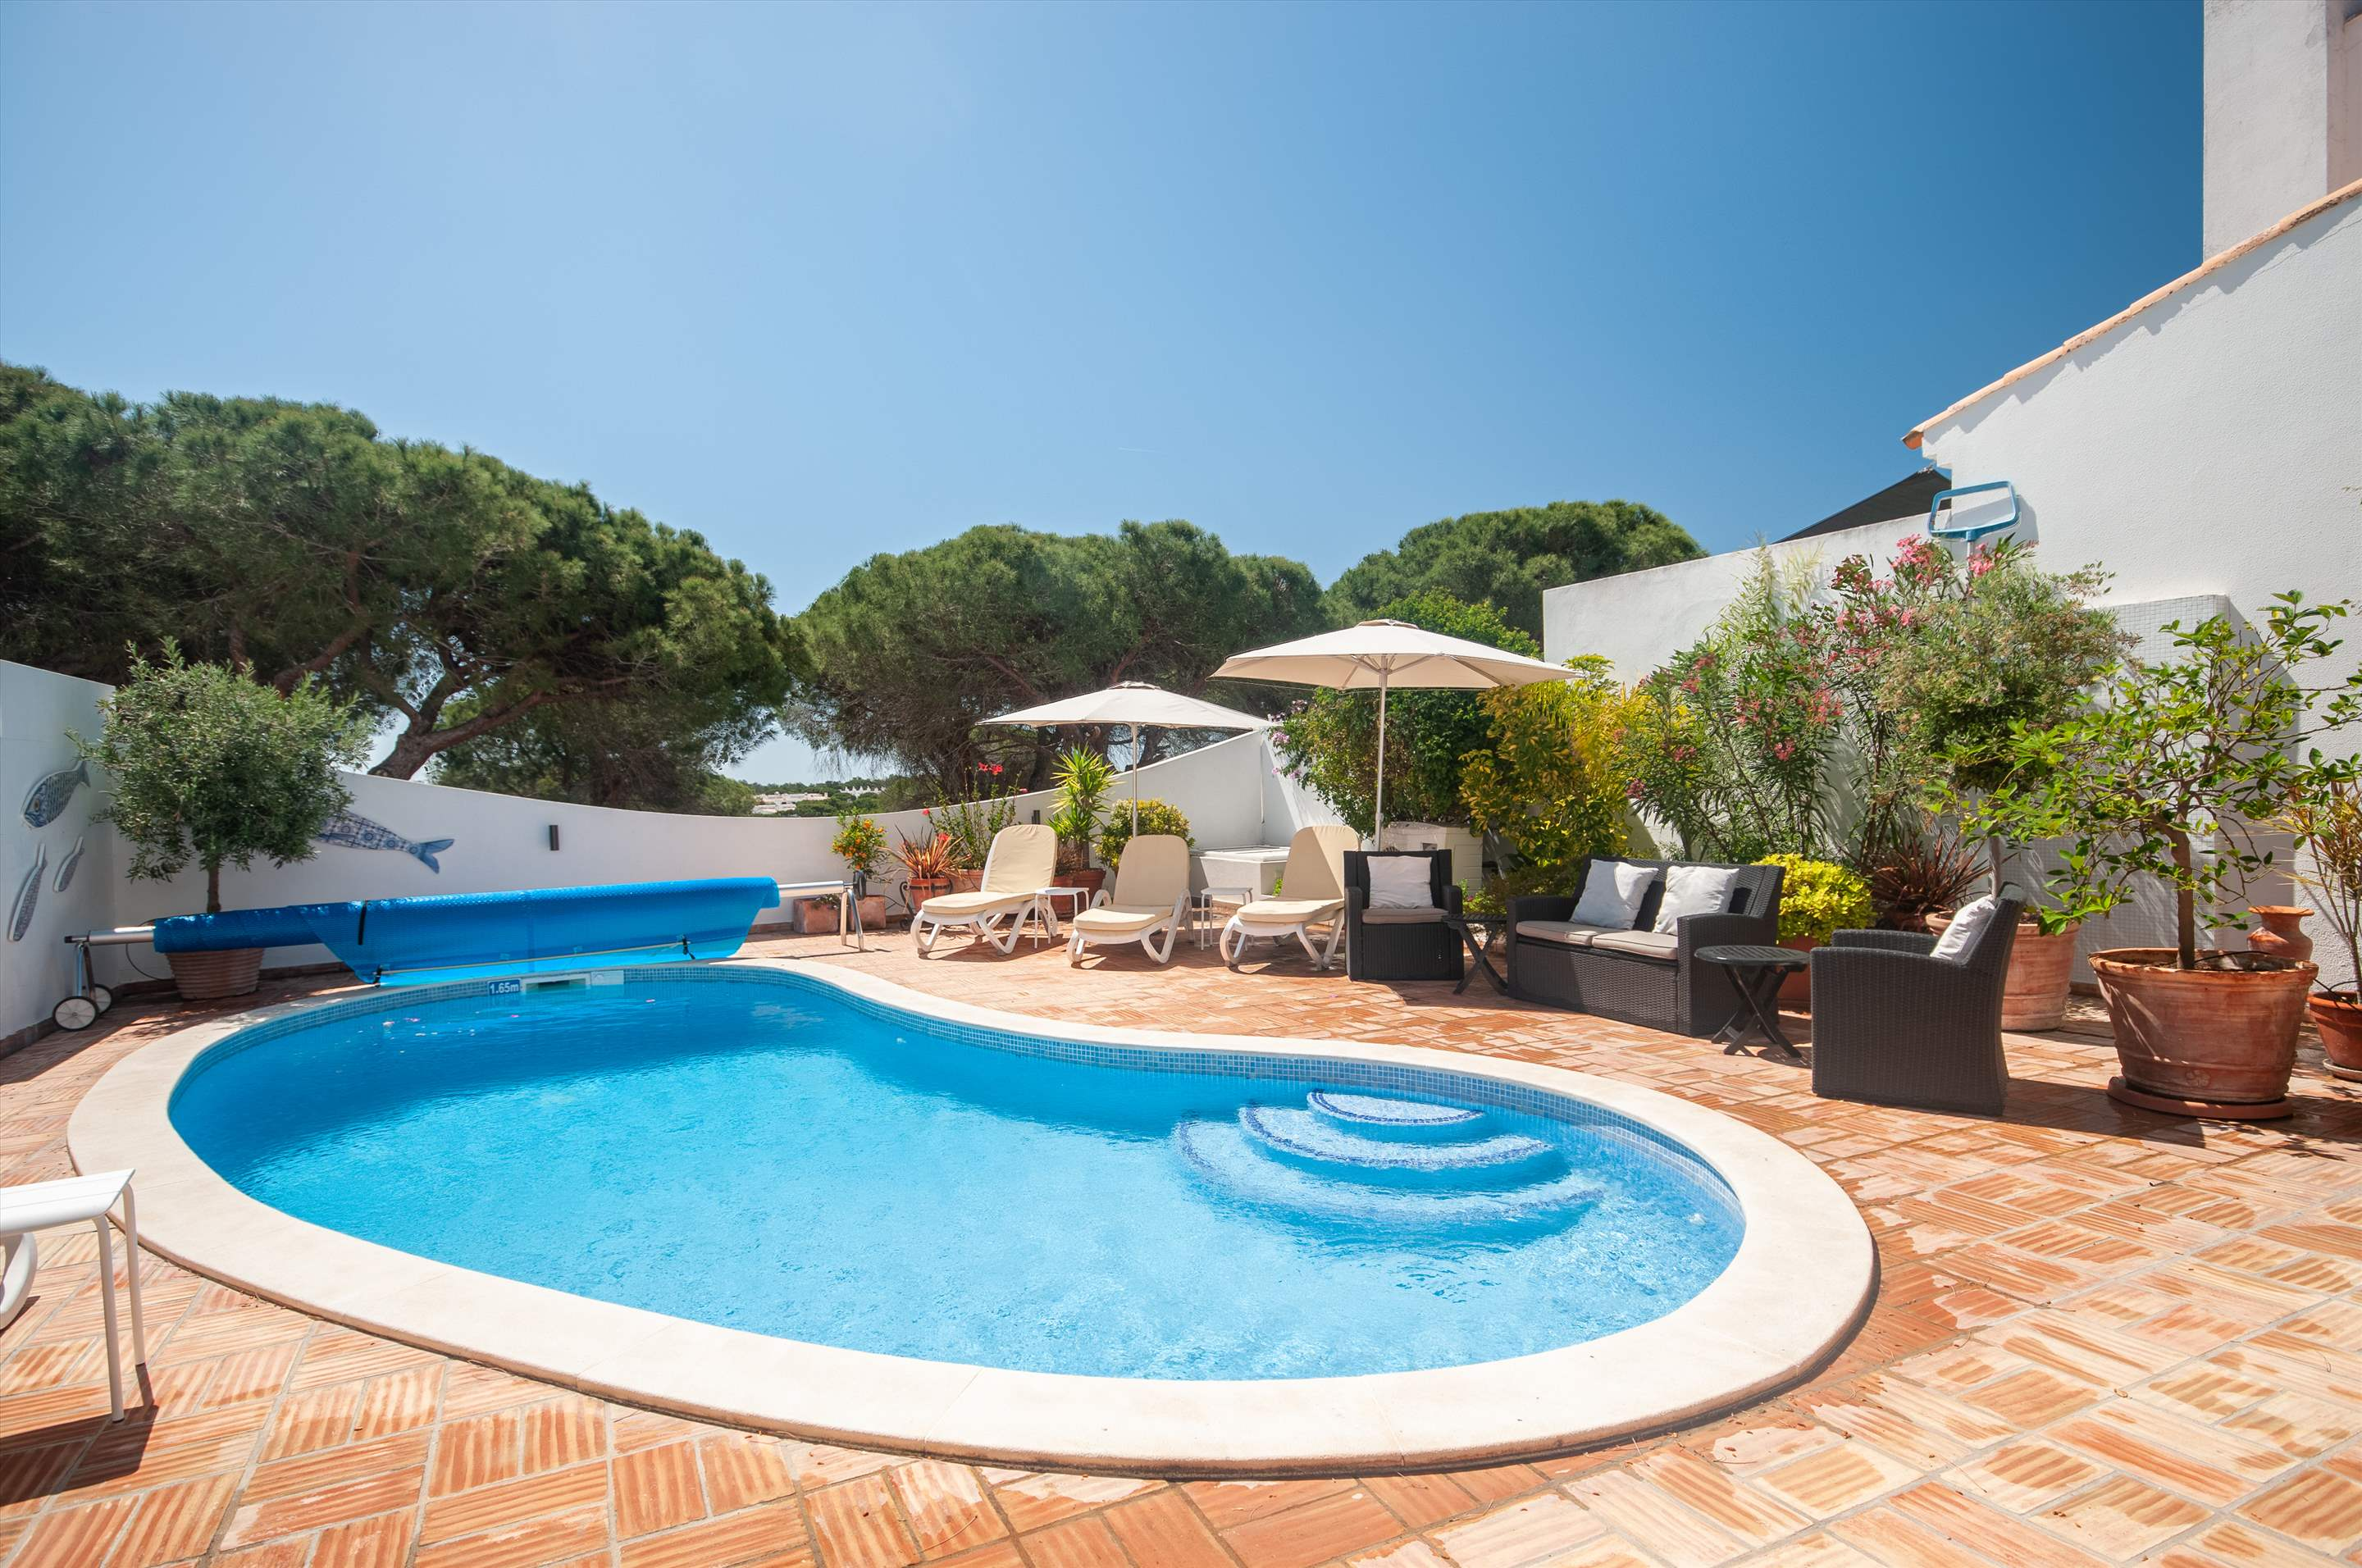 Villa Camarada, 2 bedroom villa in Dunas Douradas, Algarve Photo #3